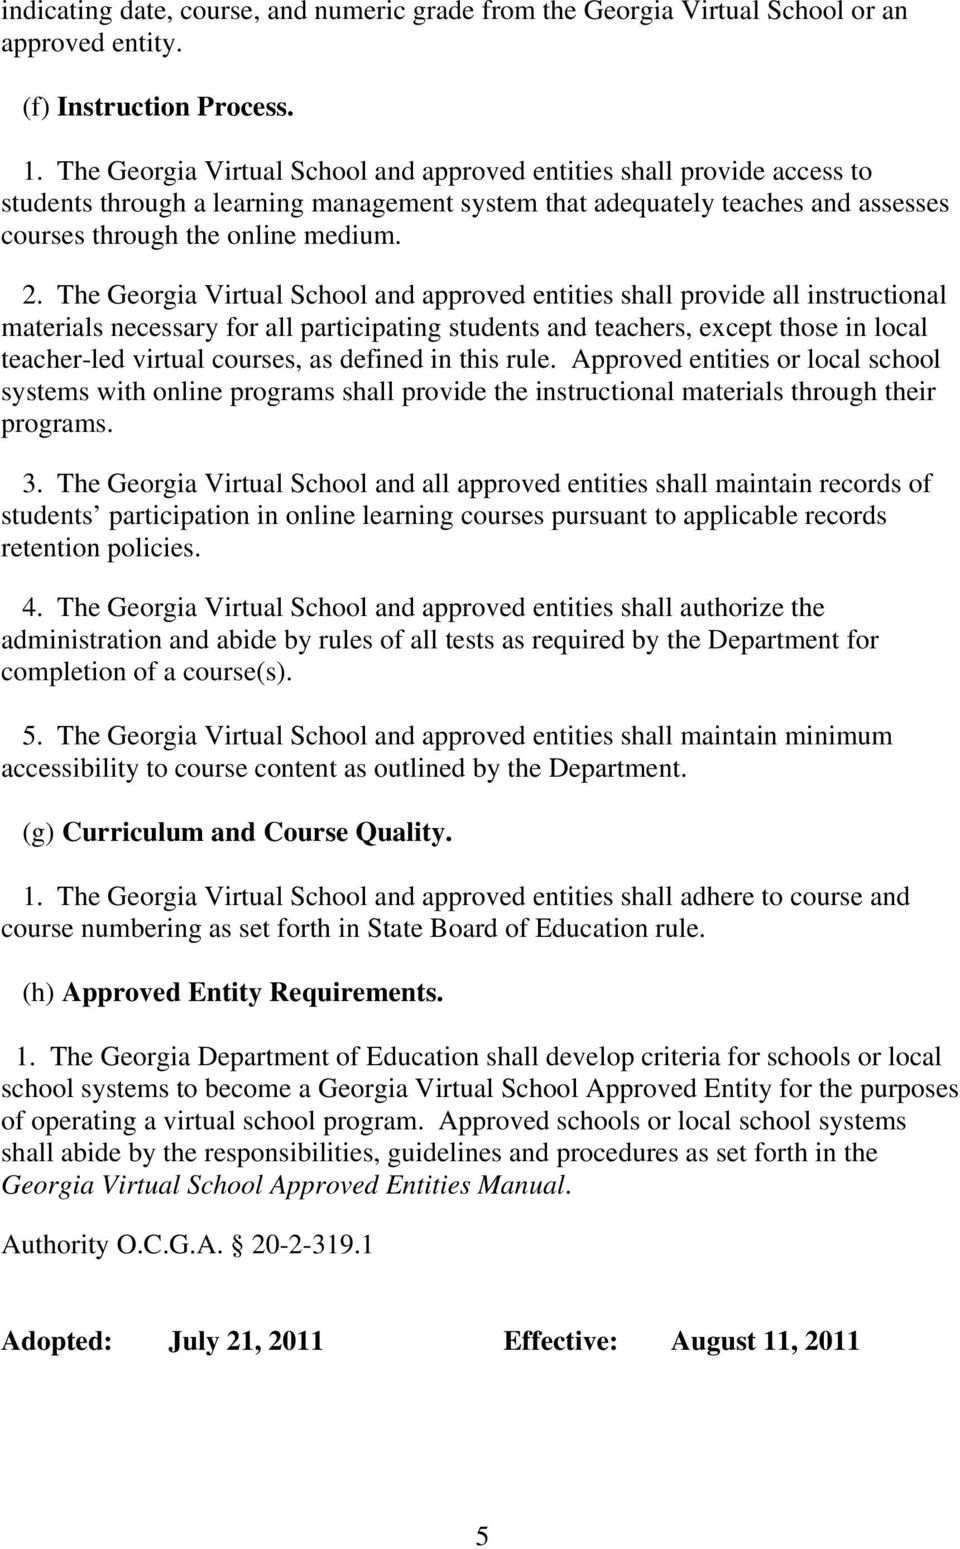 The Georgia Virtual School and approved entities shall provide all instructional materials necessary for all participating students and teachers, except those in local teacher-led virtual courses, as